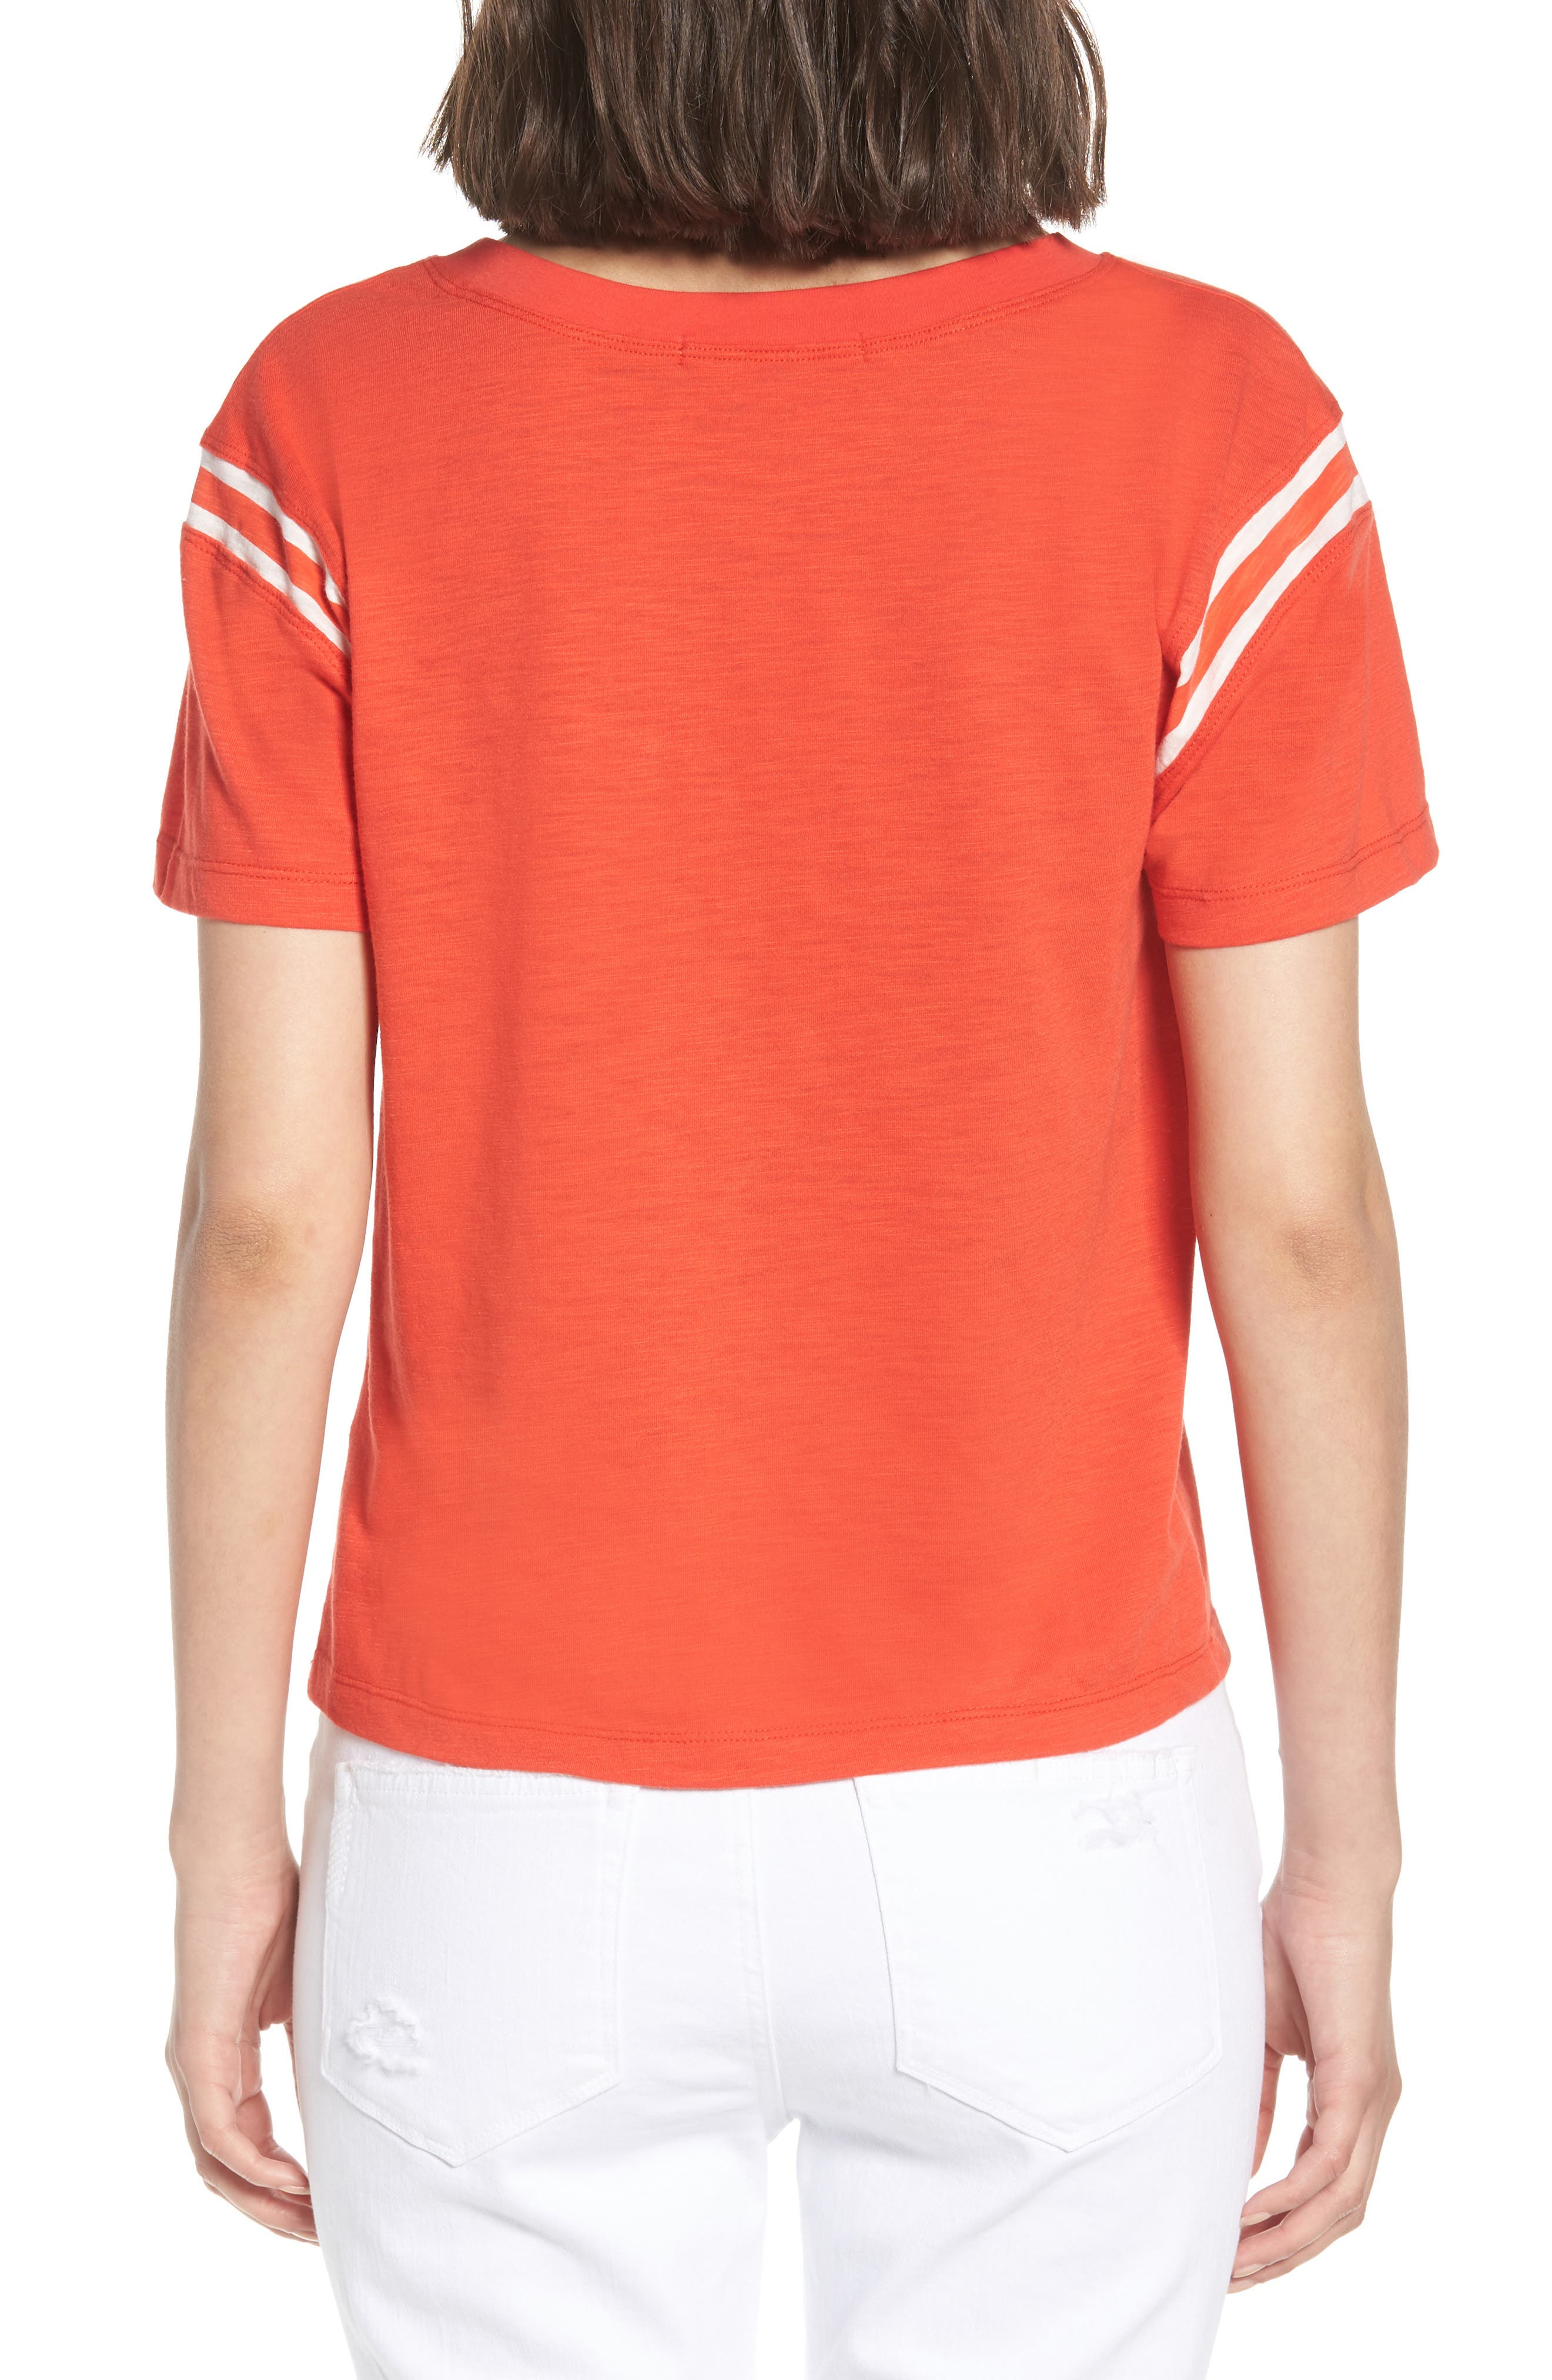 Football Tee,                             Alternate thumbnail 2, color,                             Candy Red